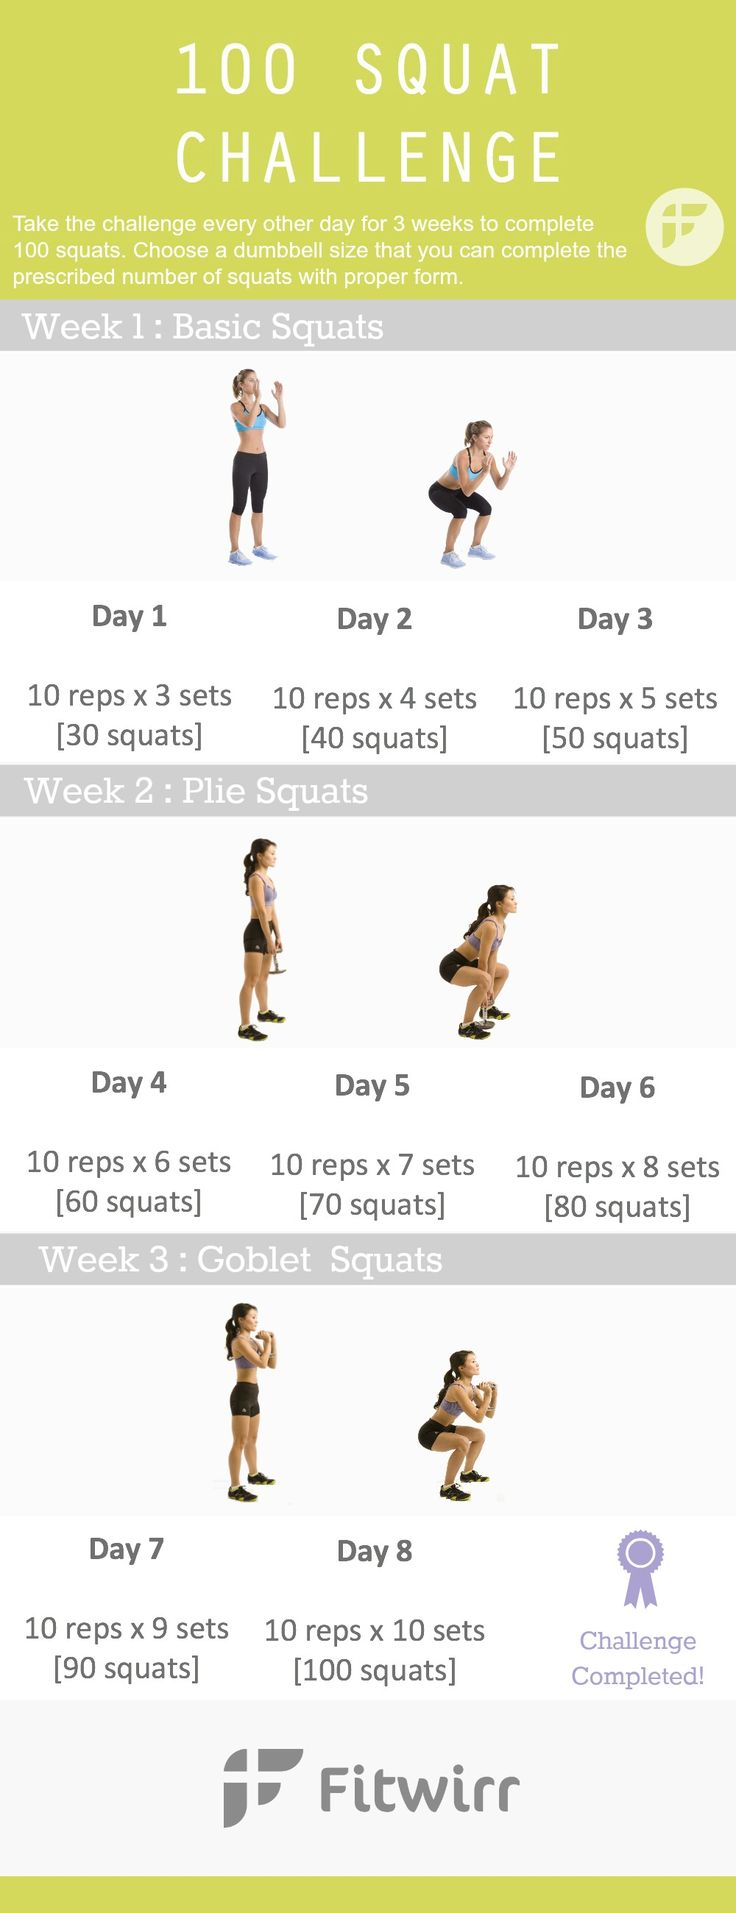 100 squat challenge for beginners: Squats are the go-to-exercise for toning the legs, butt and thighs. If you want a toned backside that looks great in bikini this season, take this 100 squat challenge for the next 3 weeks.